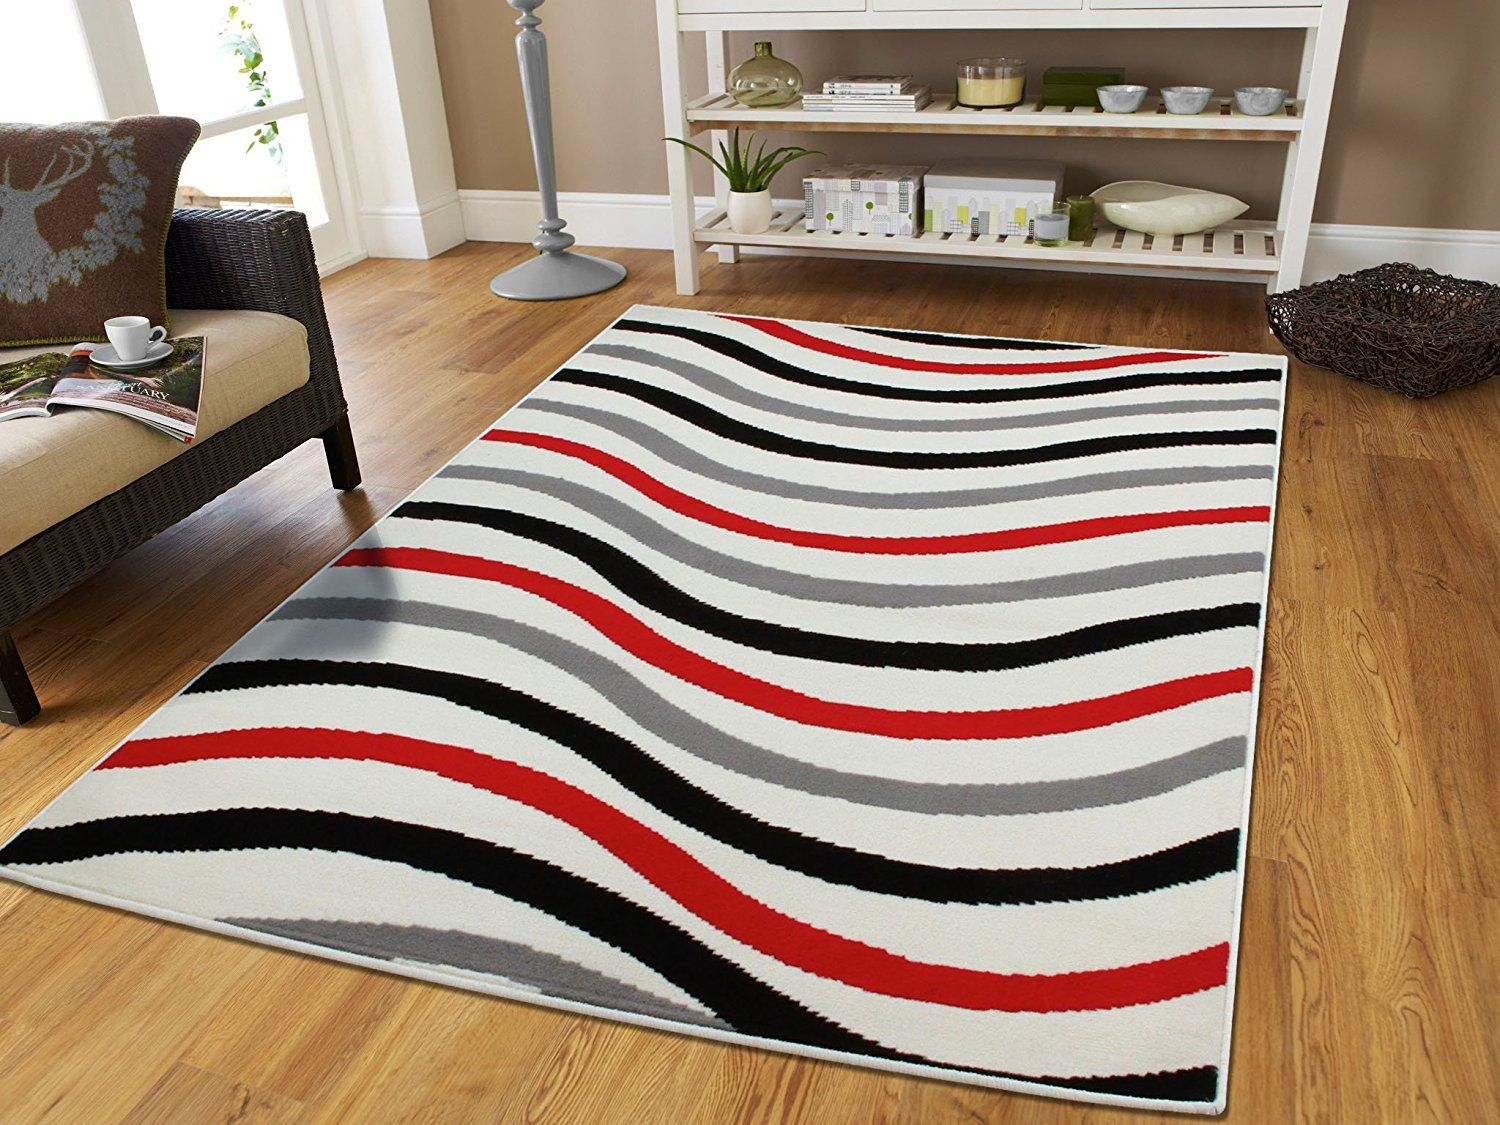 7X7 Area Rugs For Dining Room Luxury Wavy Pattern Area Rugs With Lines Black Grey Red White Rug